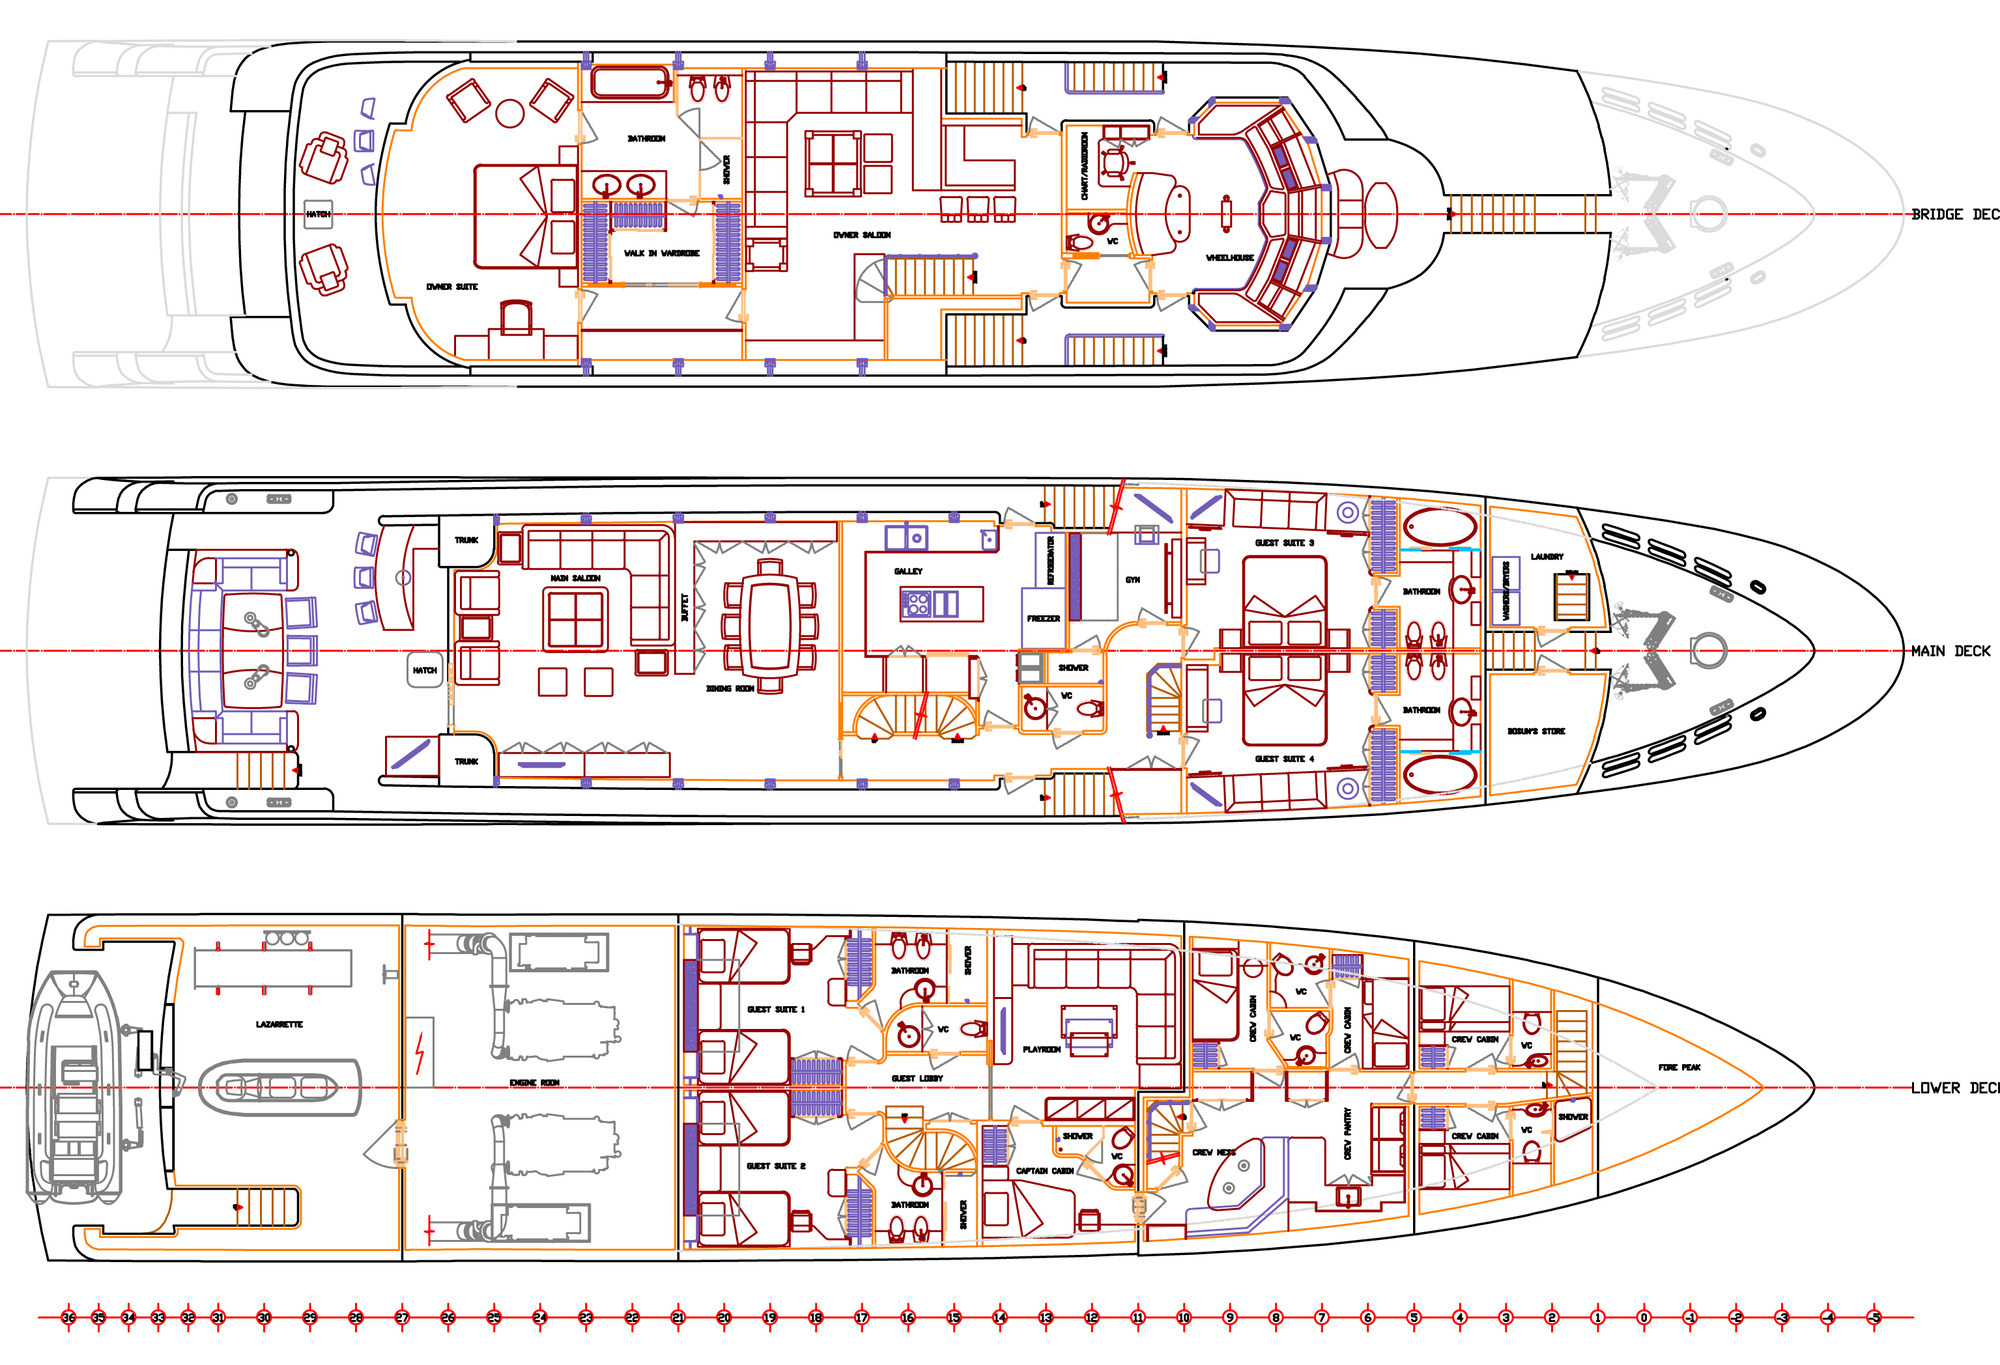 Plan Image Gallery - ANDA Main Deck Plan - Deck Plan – Luxury Yacht ...